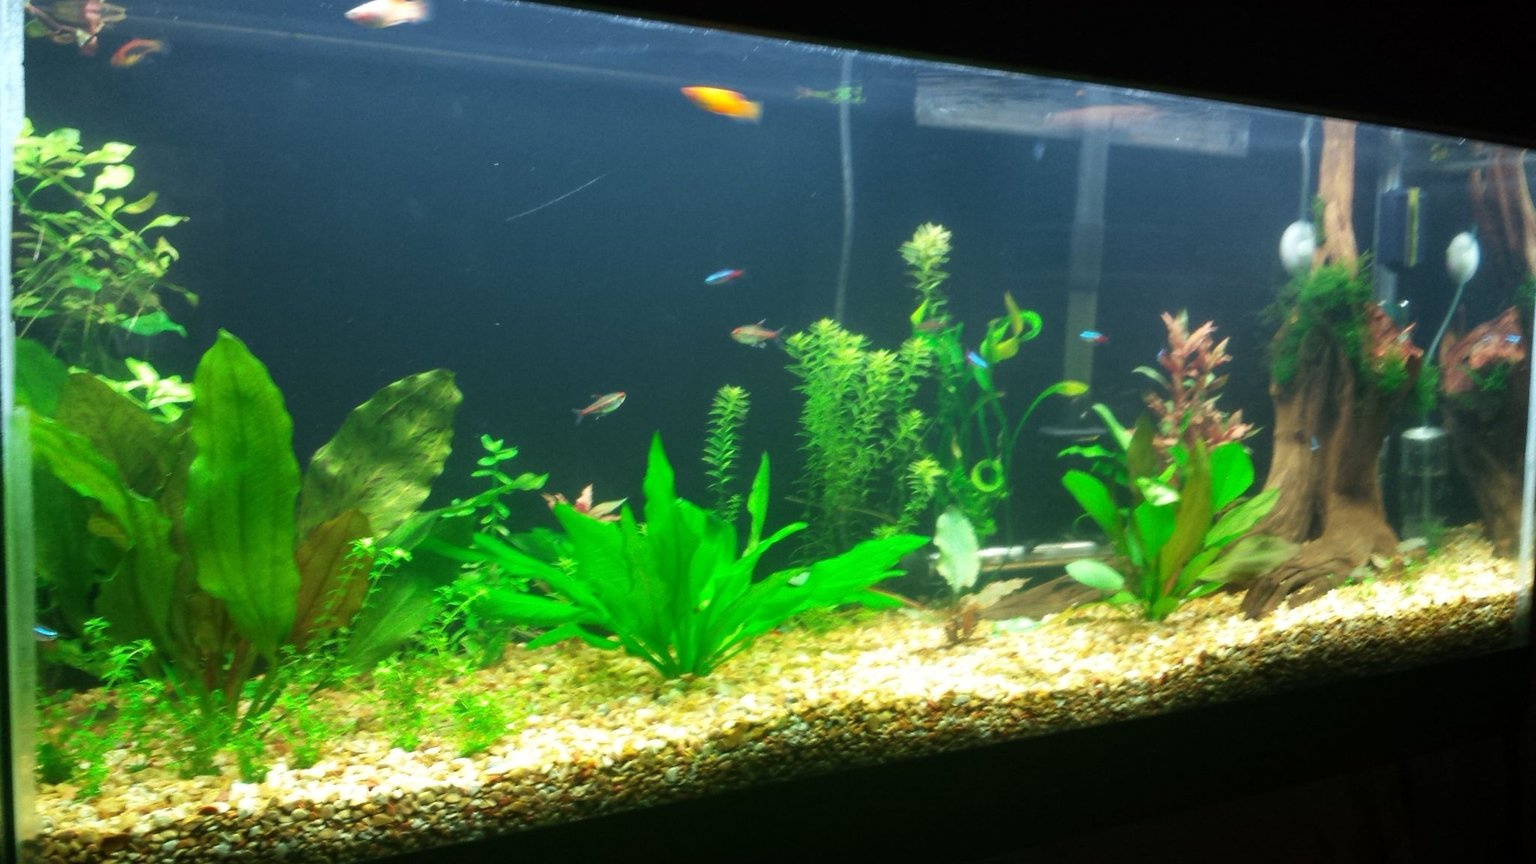 55 gallons freshwater fish tank (mostly fish and non-living decorations) - 1 month after setup and still in progress